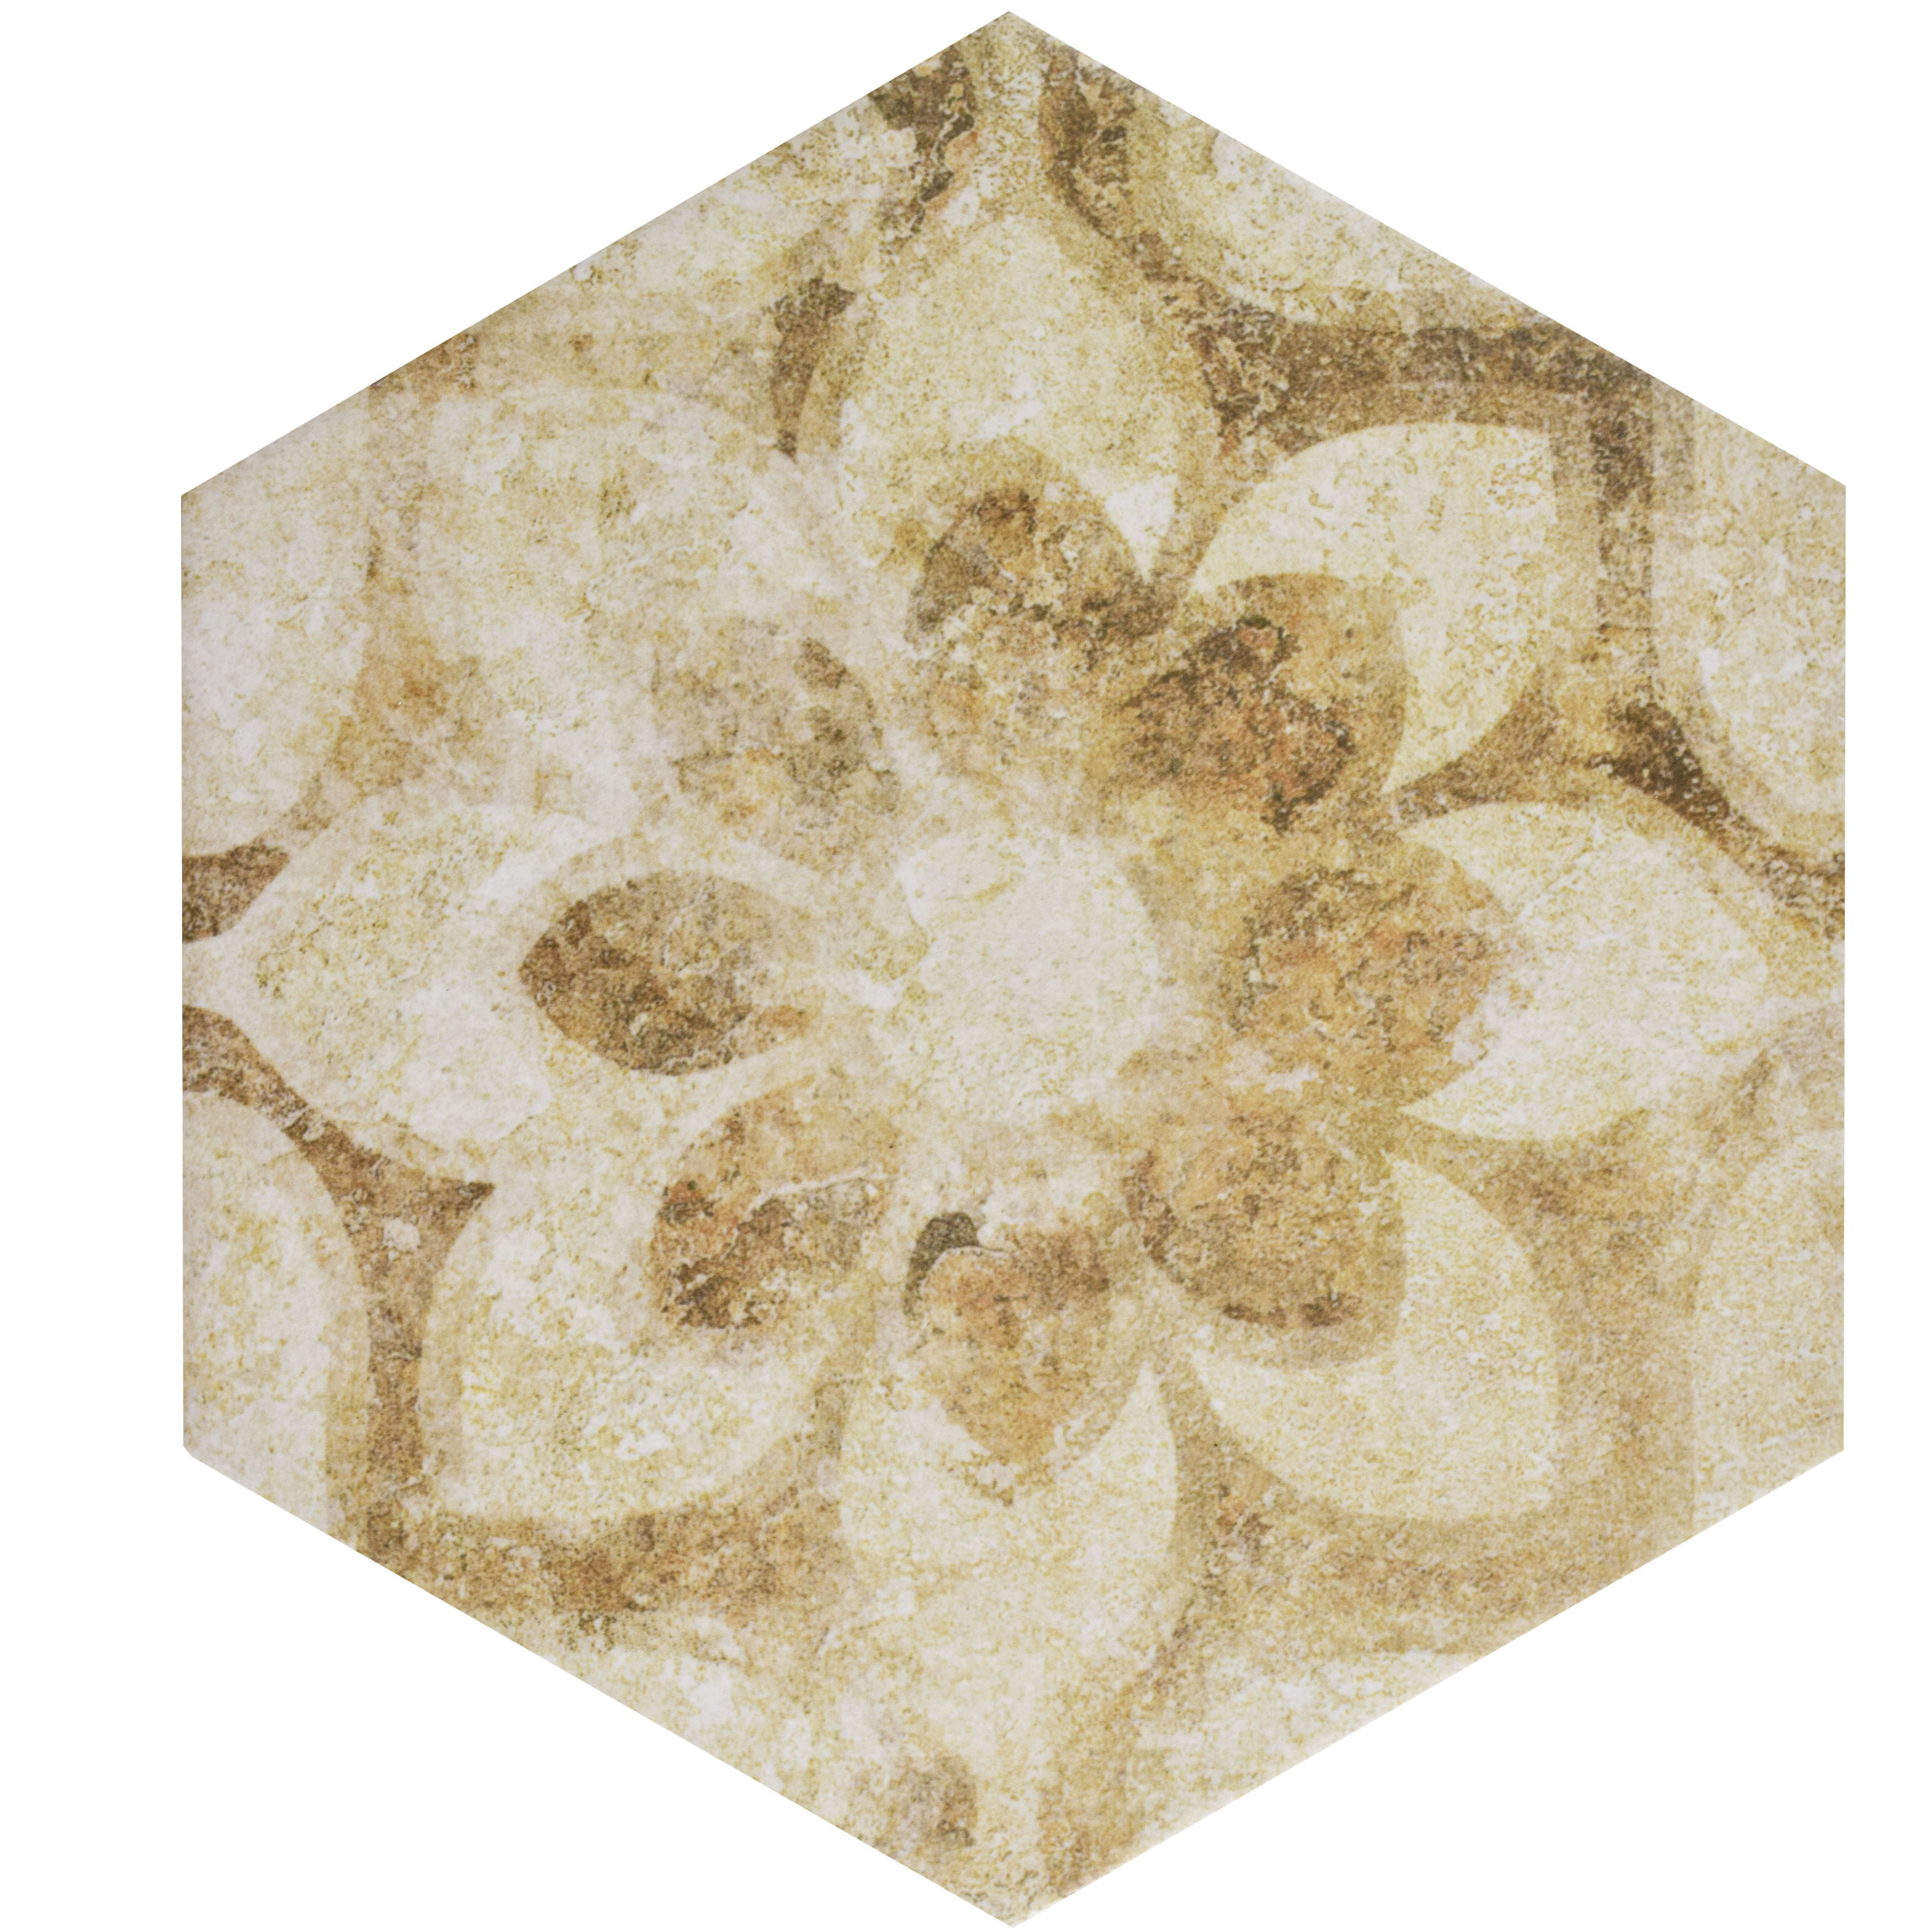 SomerTile 8.625x9.875-inch Pierre Cream Hex Decor Porcelain Floor ...